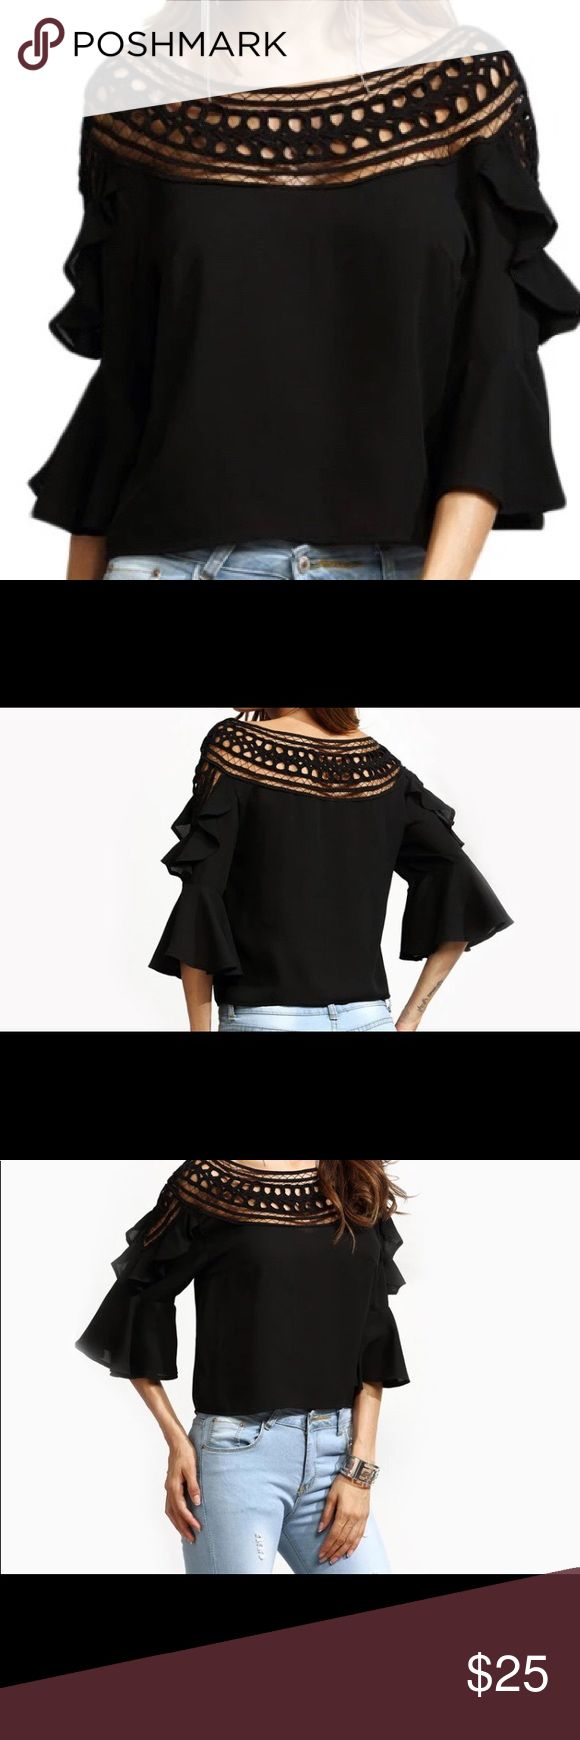 MAKE an OFFER !!! Crochet neck blouse top shirt SALE!!! Gorgeous blouse top with crochet lace neck. Make an offer!!! Tops Blouses